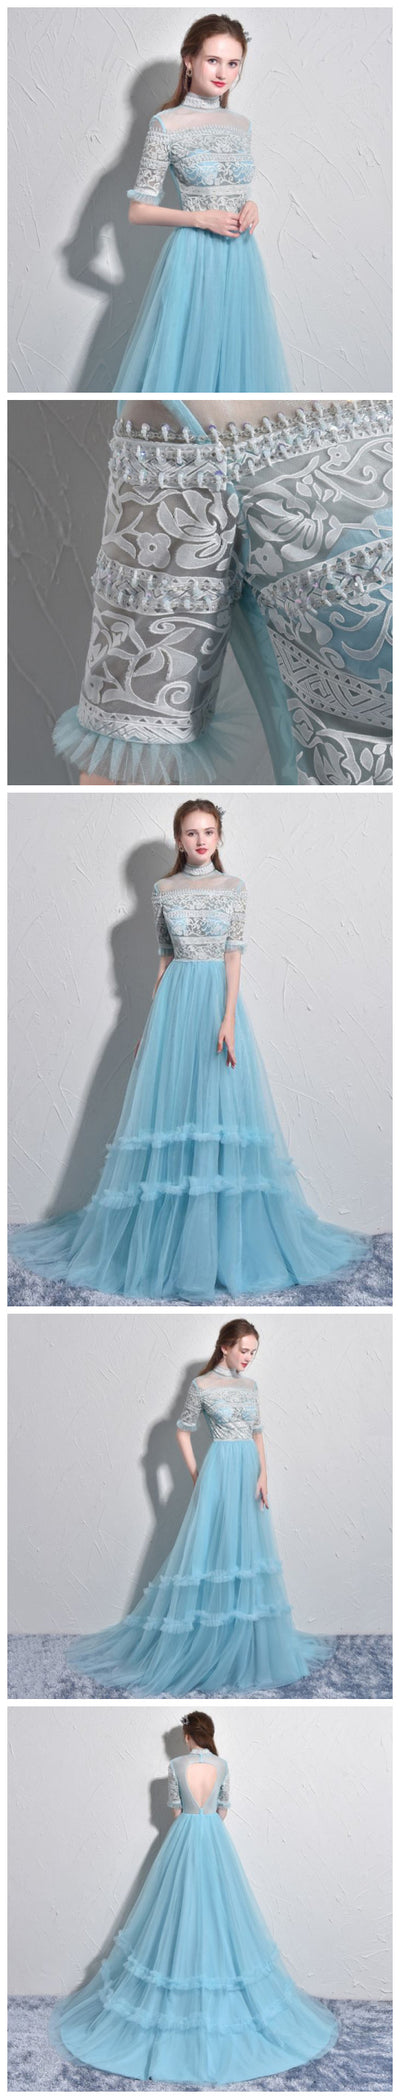 Half Sleeves High Neck Prom Dresses, Tulle A-line Lace Beads Unique Design Prom Dress, PD0347